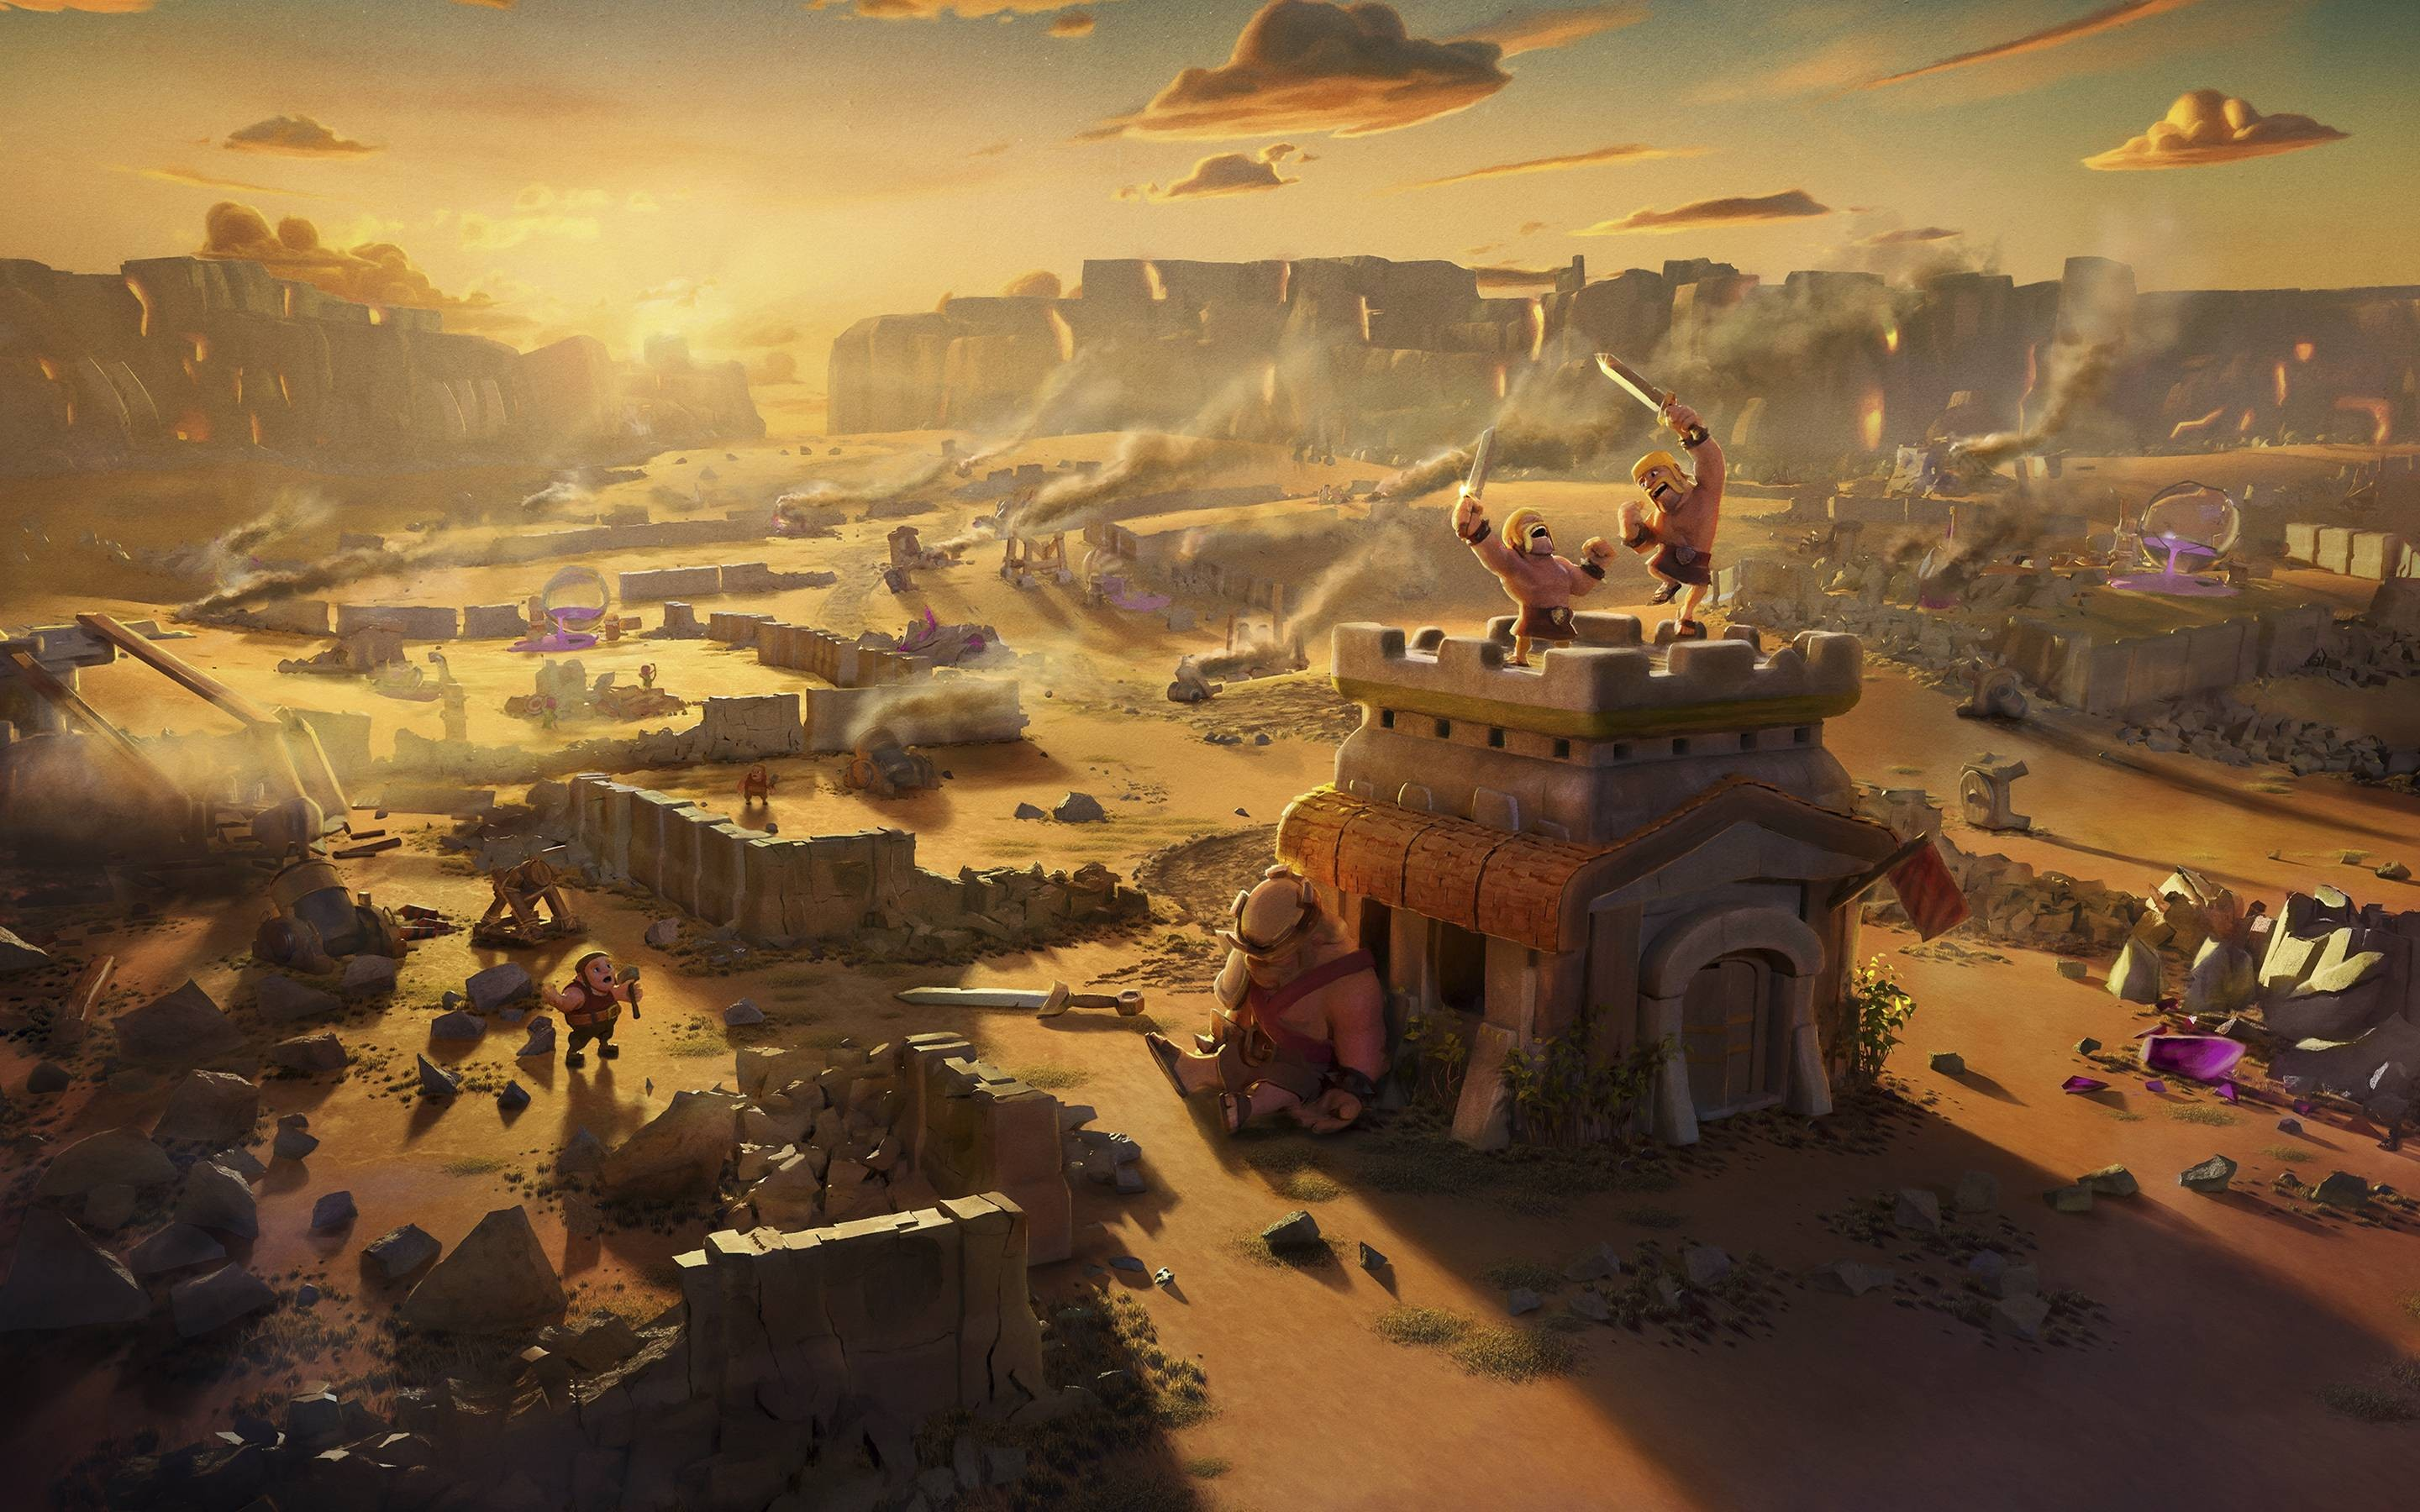 Clash Of Clans Wallpaper Download Free Cool Wallpapers For